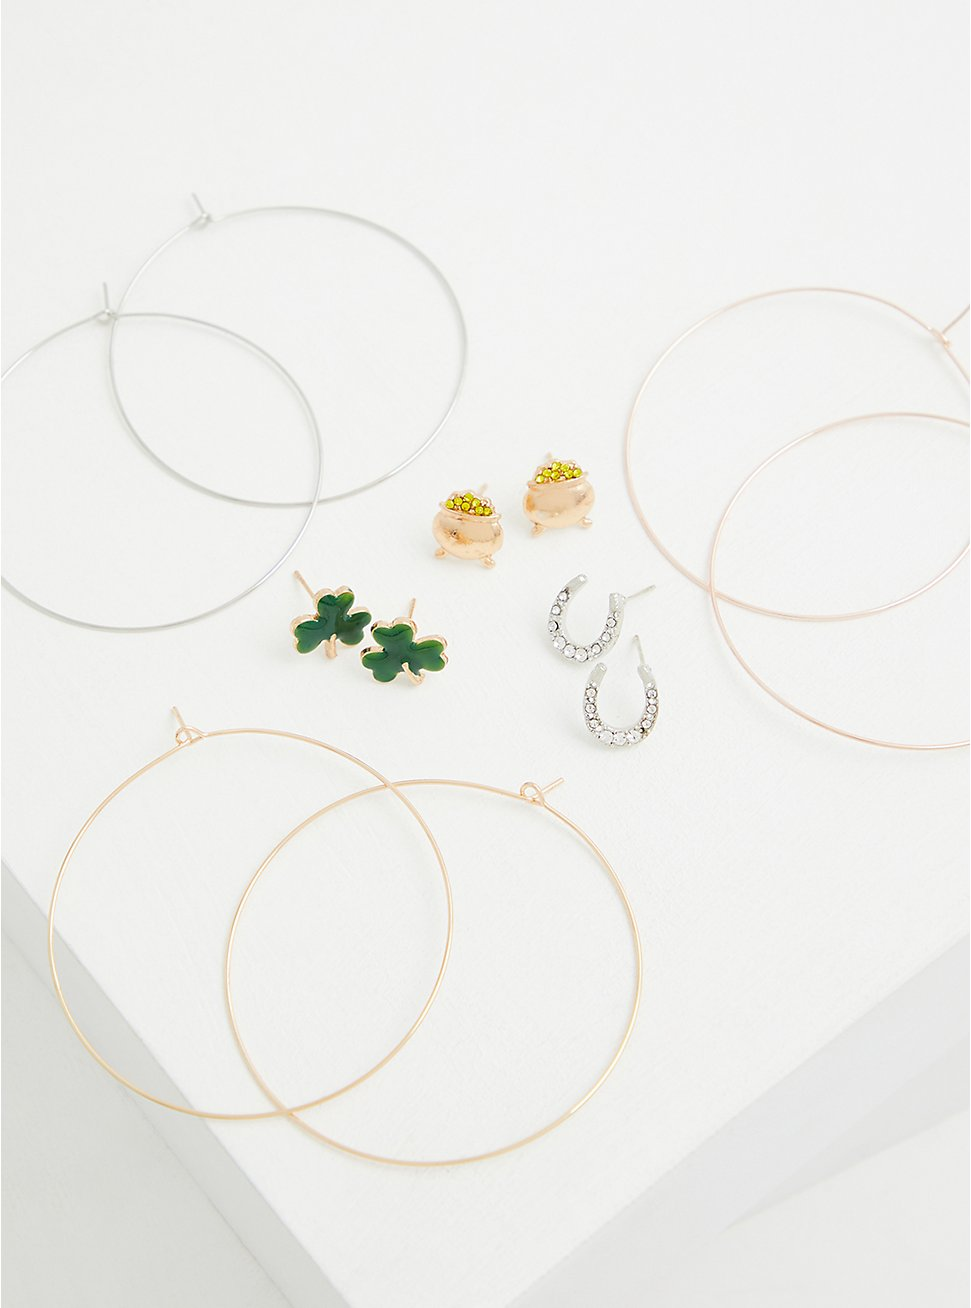 Mixed Metal Lucky Charms Stud & Hoop Earring Set - Set of 6, , hi-res